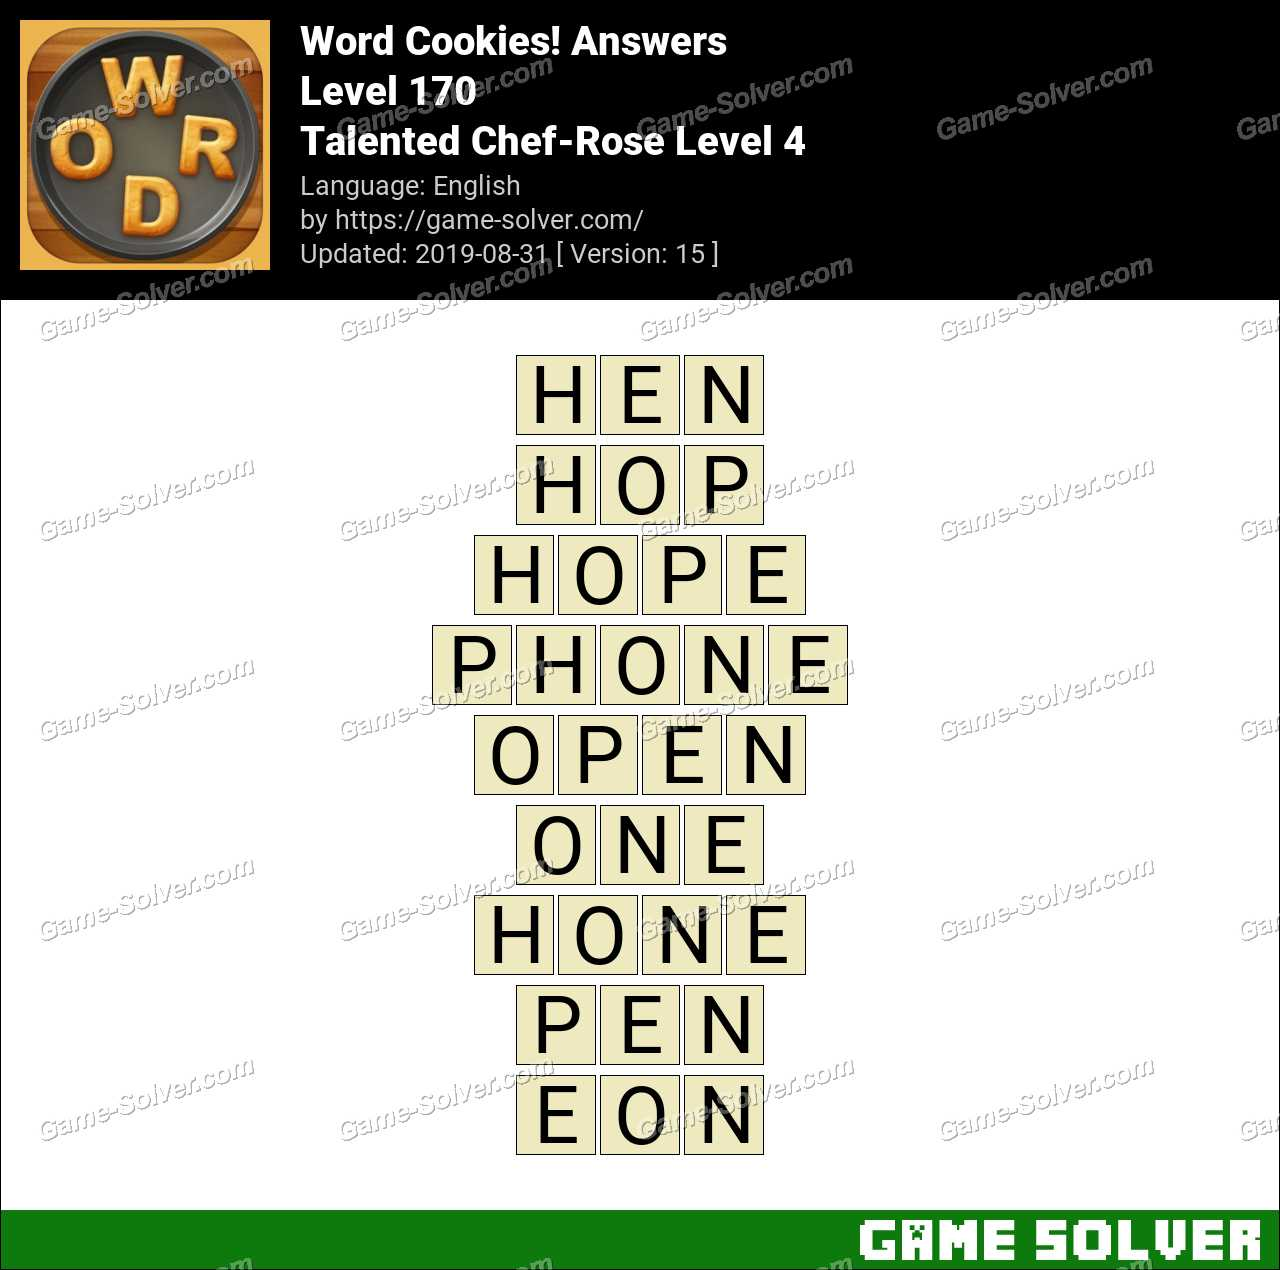 Word Cookies Talented Chef-Rose Level 4 Answers